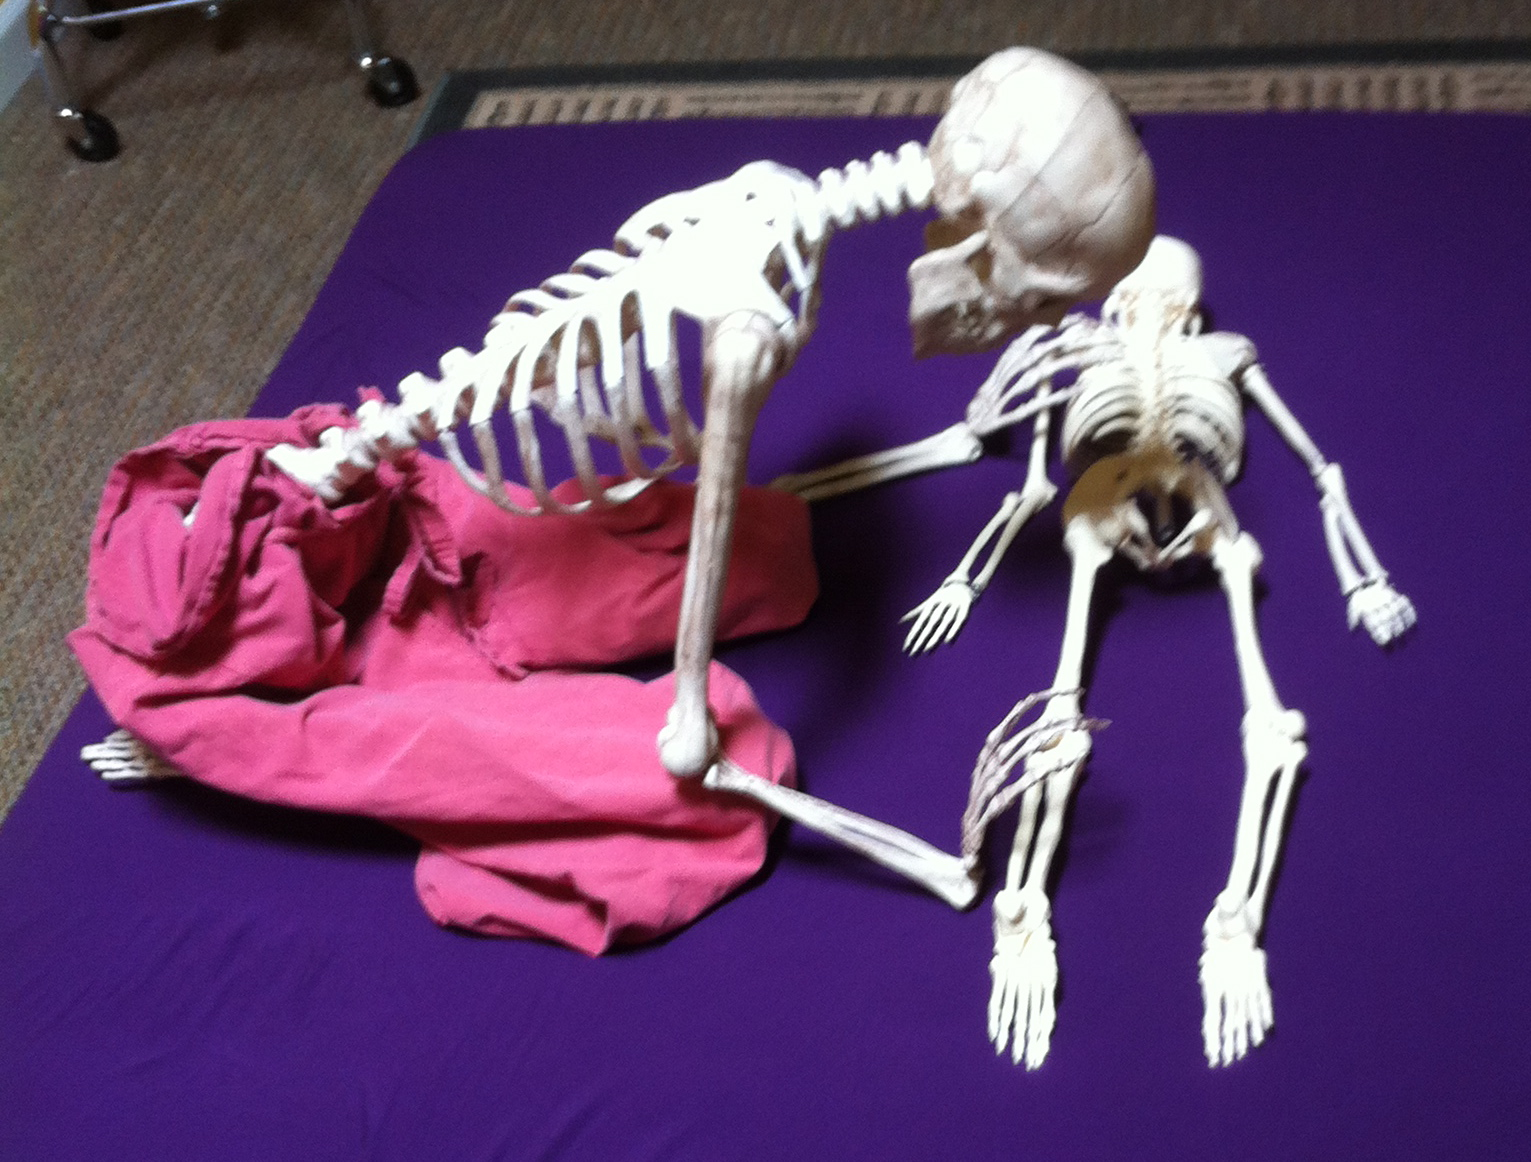 Massage is good for bones & joints